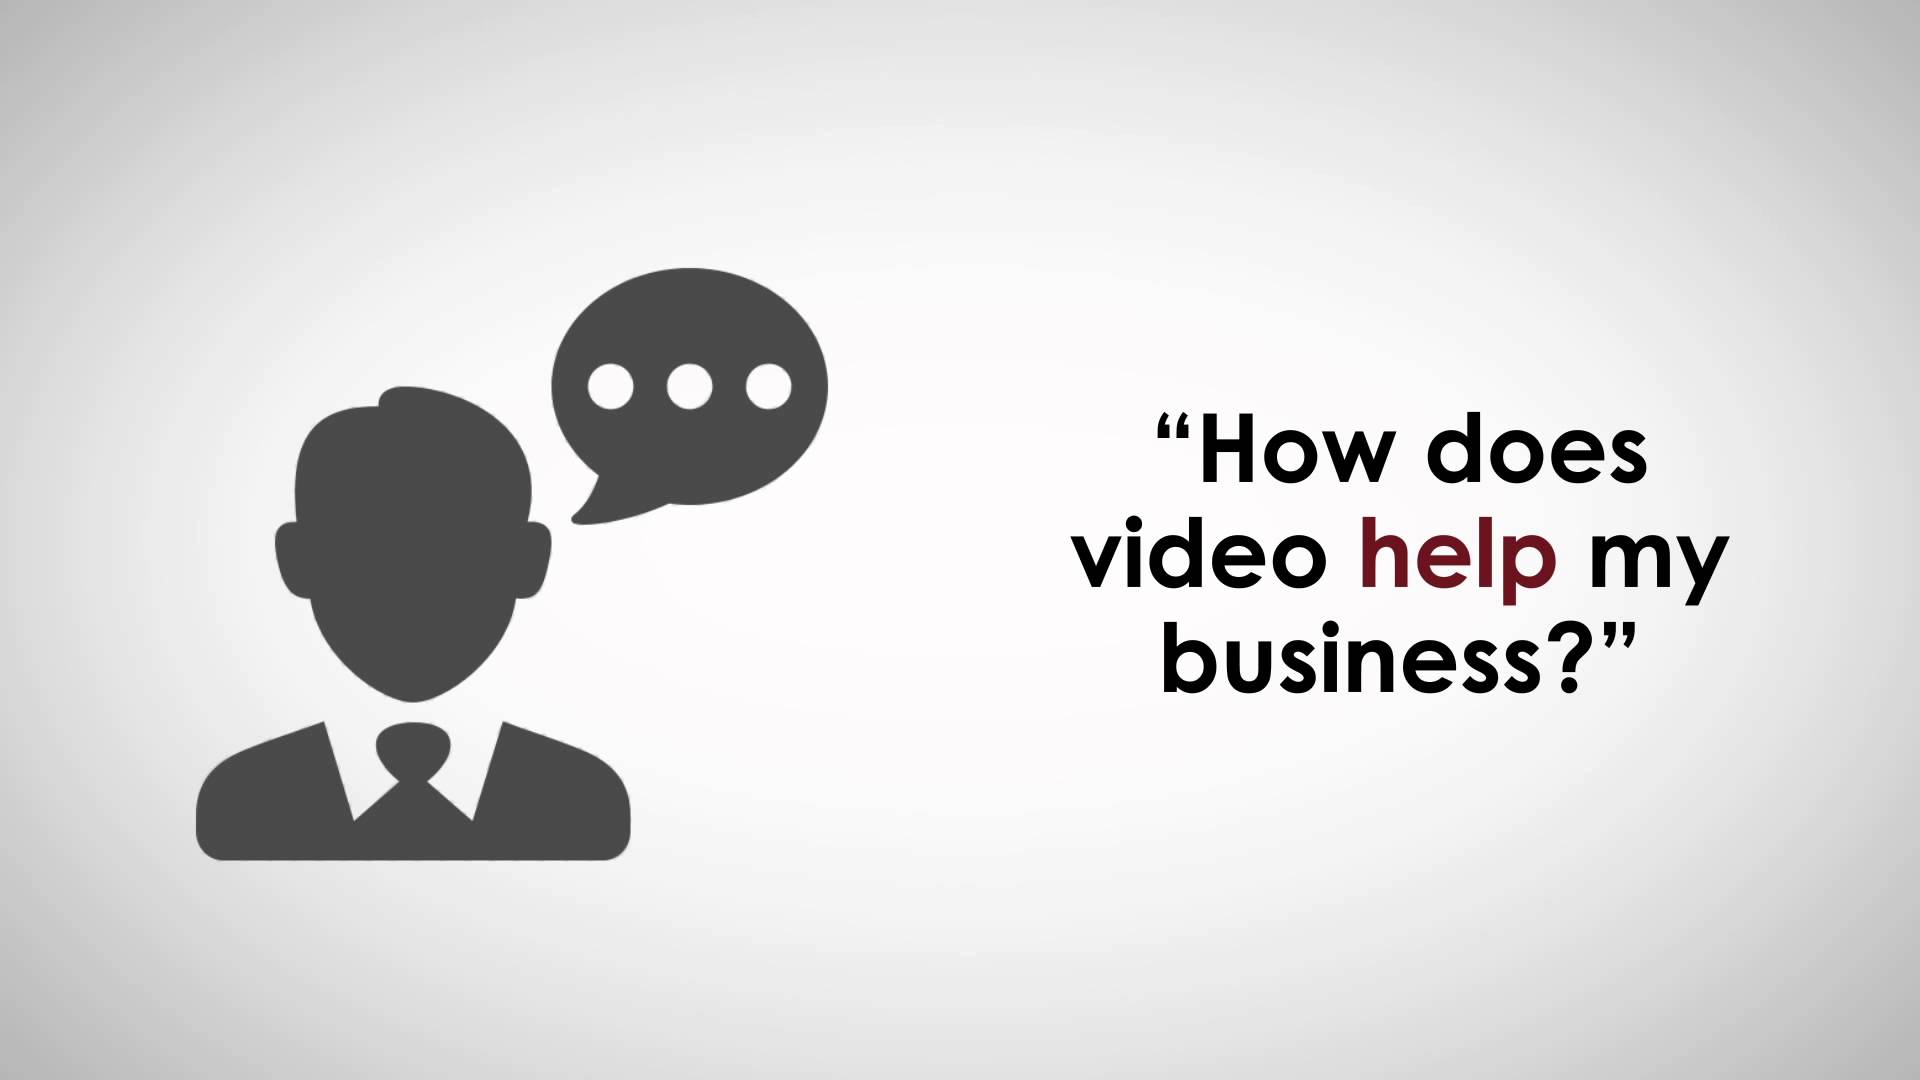 PART 3: 30 Ways Video Marketing Can Make Your Marketing Budget Go Further